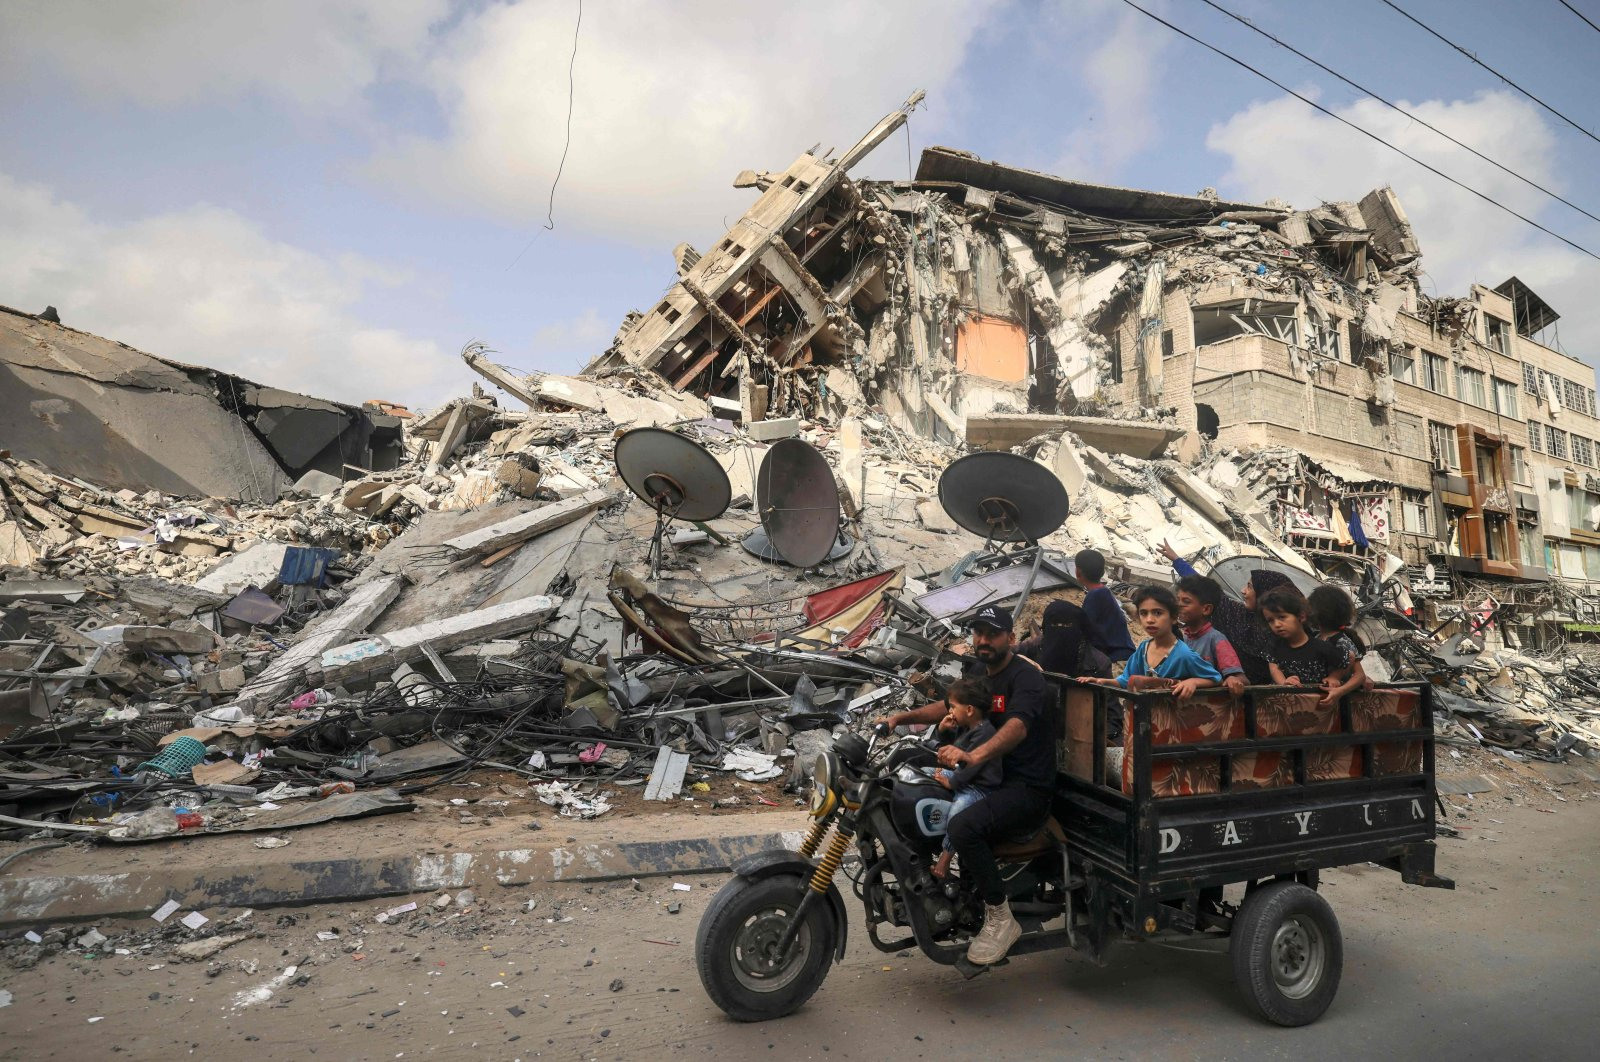 A Palestinian man transports children in a tricycle past the Al-Shuruq building, destroyed by an Israeli airstrike, after a cease-fire was agreed upon between Israel and Hamas, in Gaza City, Palestine, May 21, 2021. (AFP Photo)